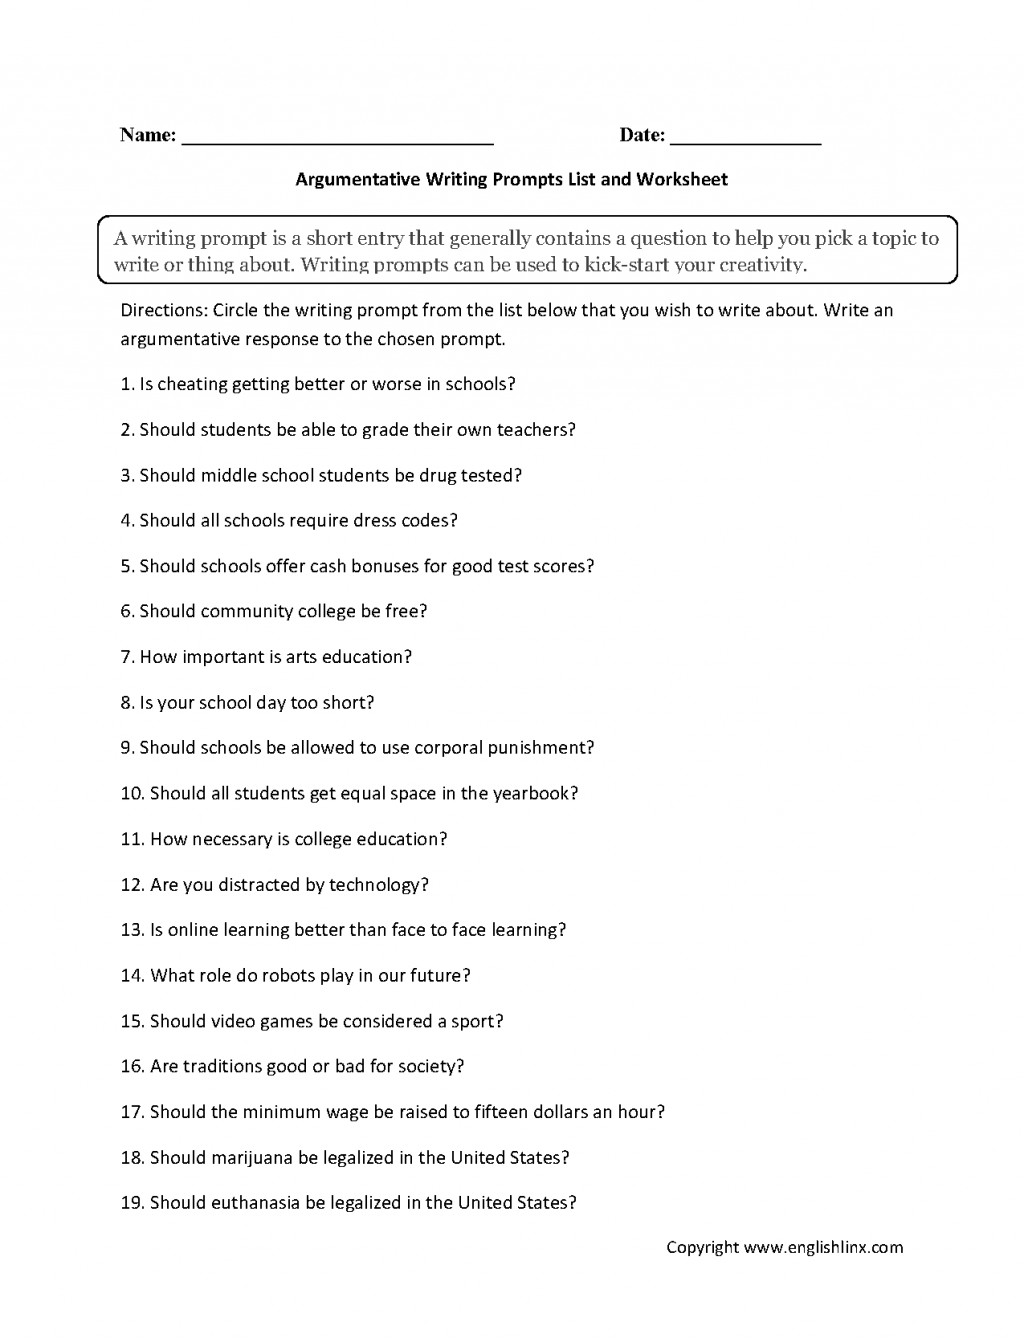 016 Essay Example Argumentative Writing Prompts List Worksheet Minimum Unforgettable Wage Against Raising Persuasive Large